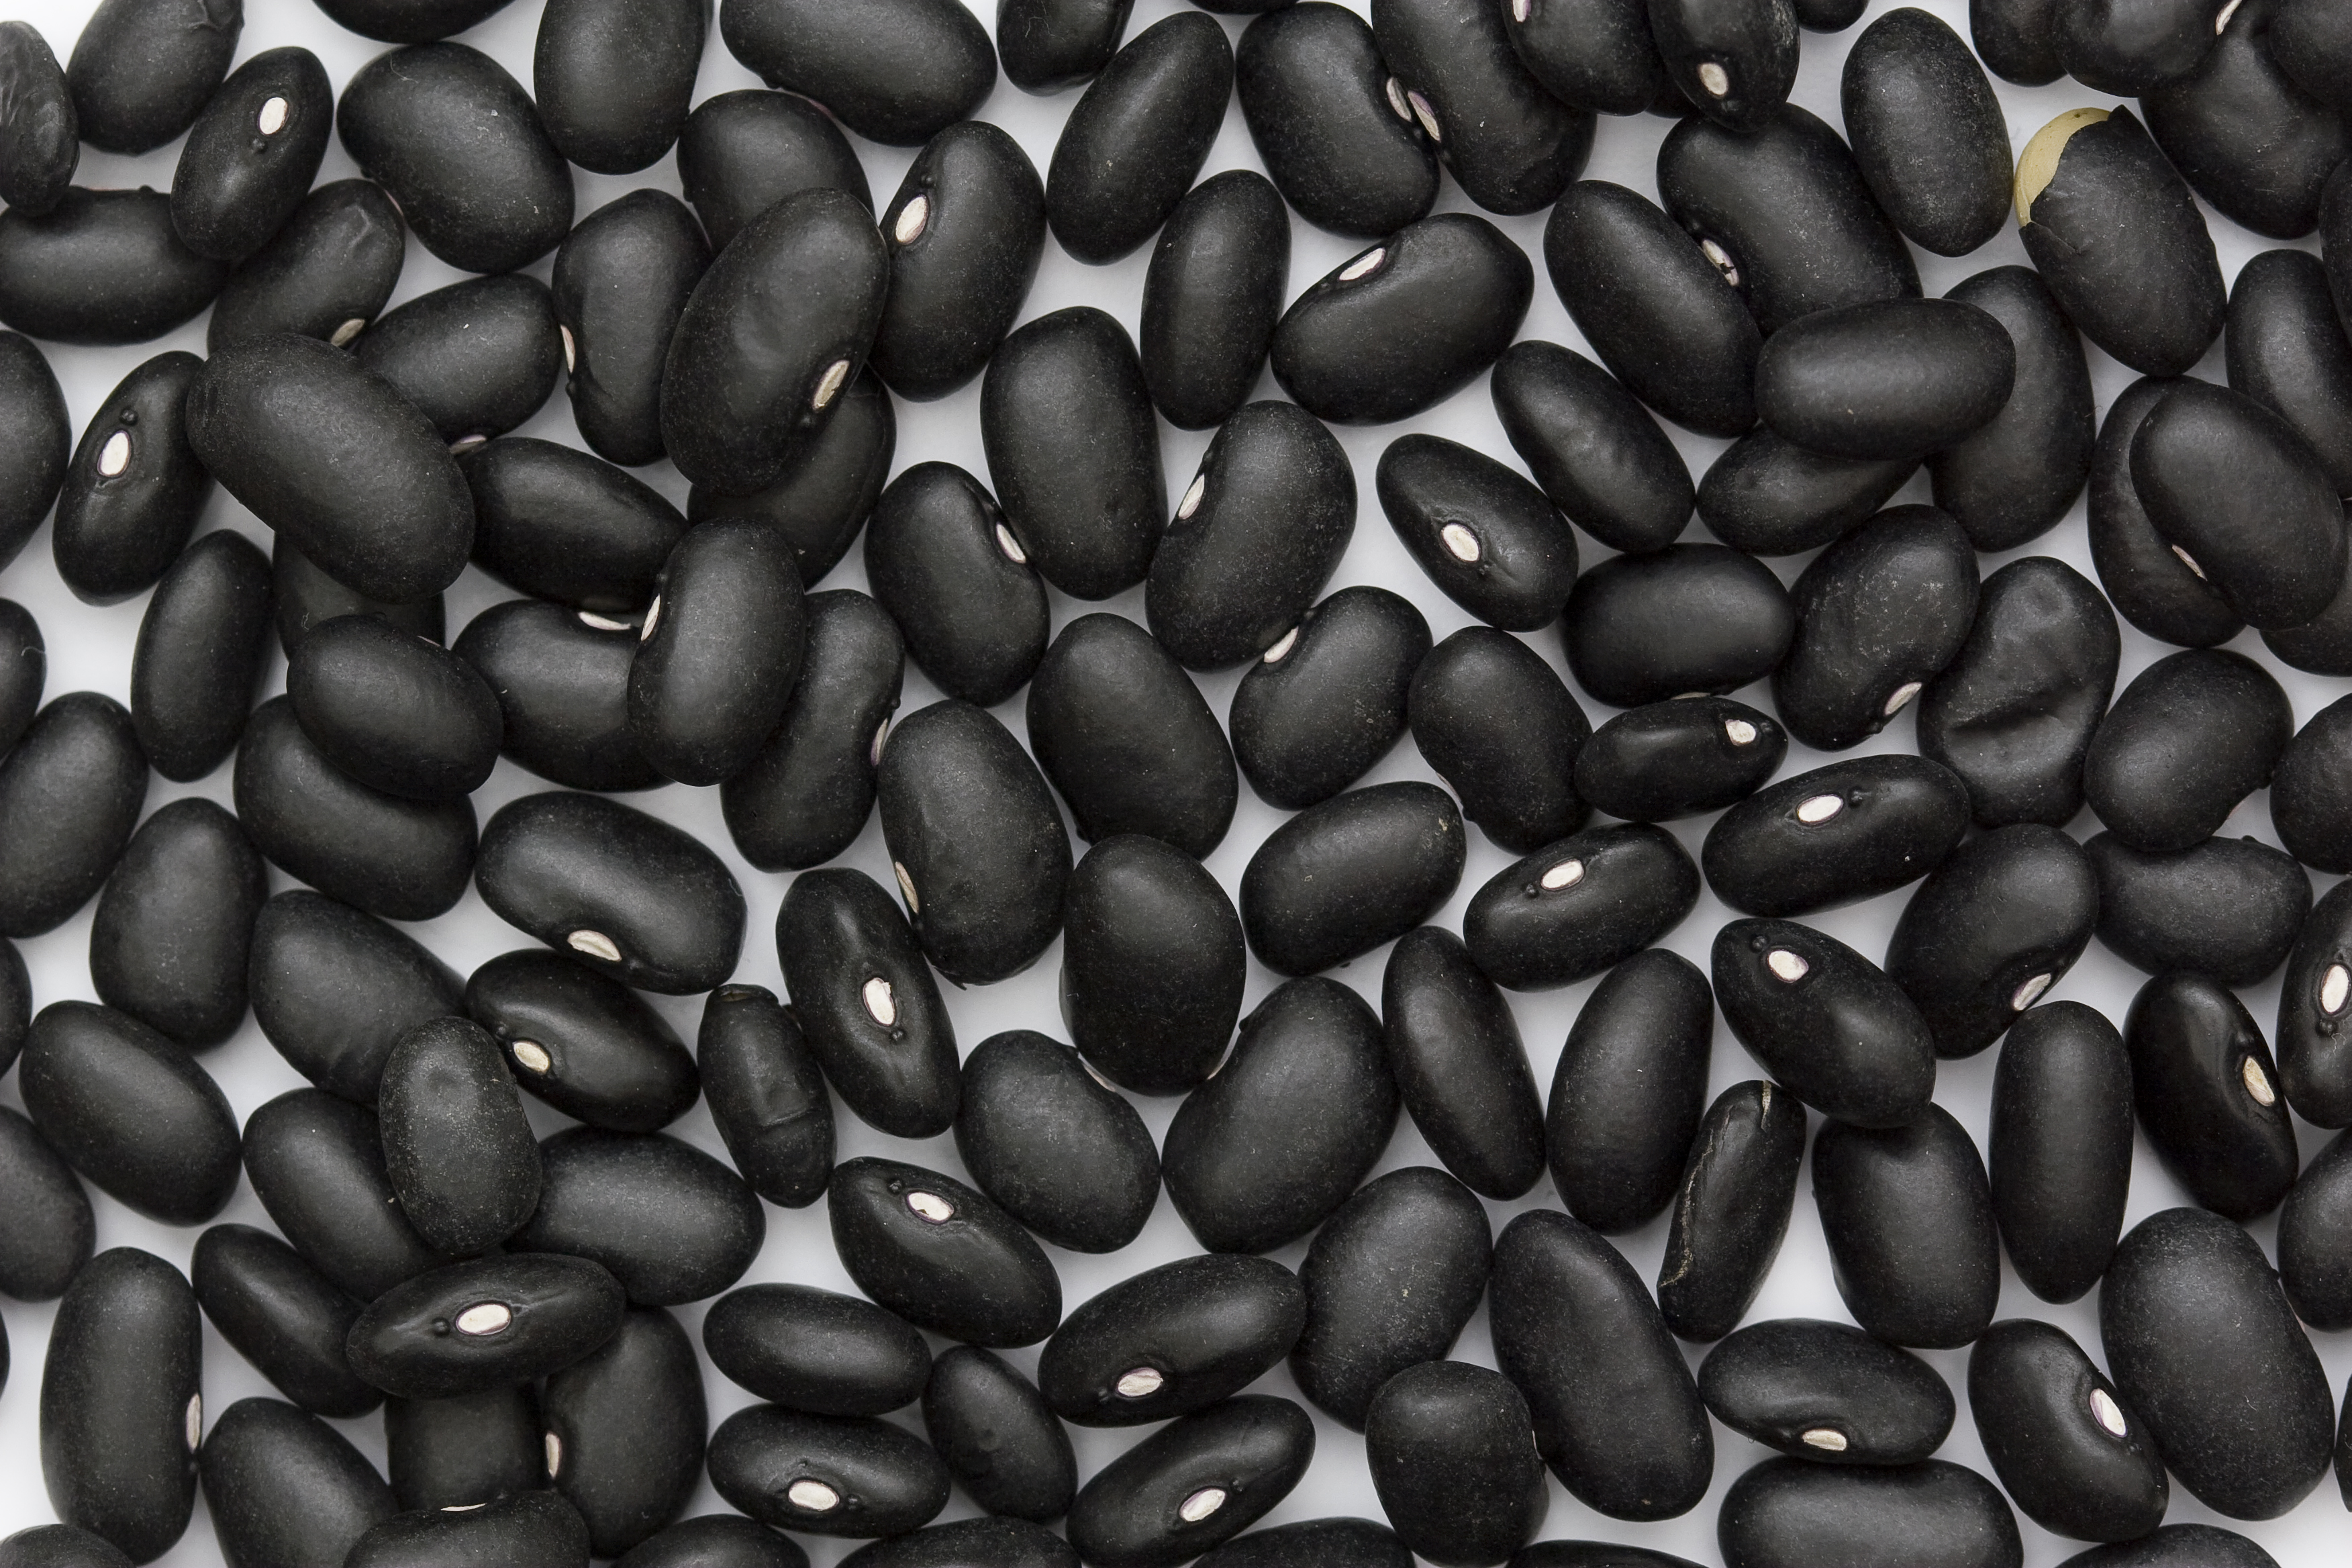 black beans were used to treat gout in Taiwan